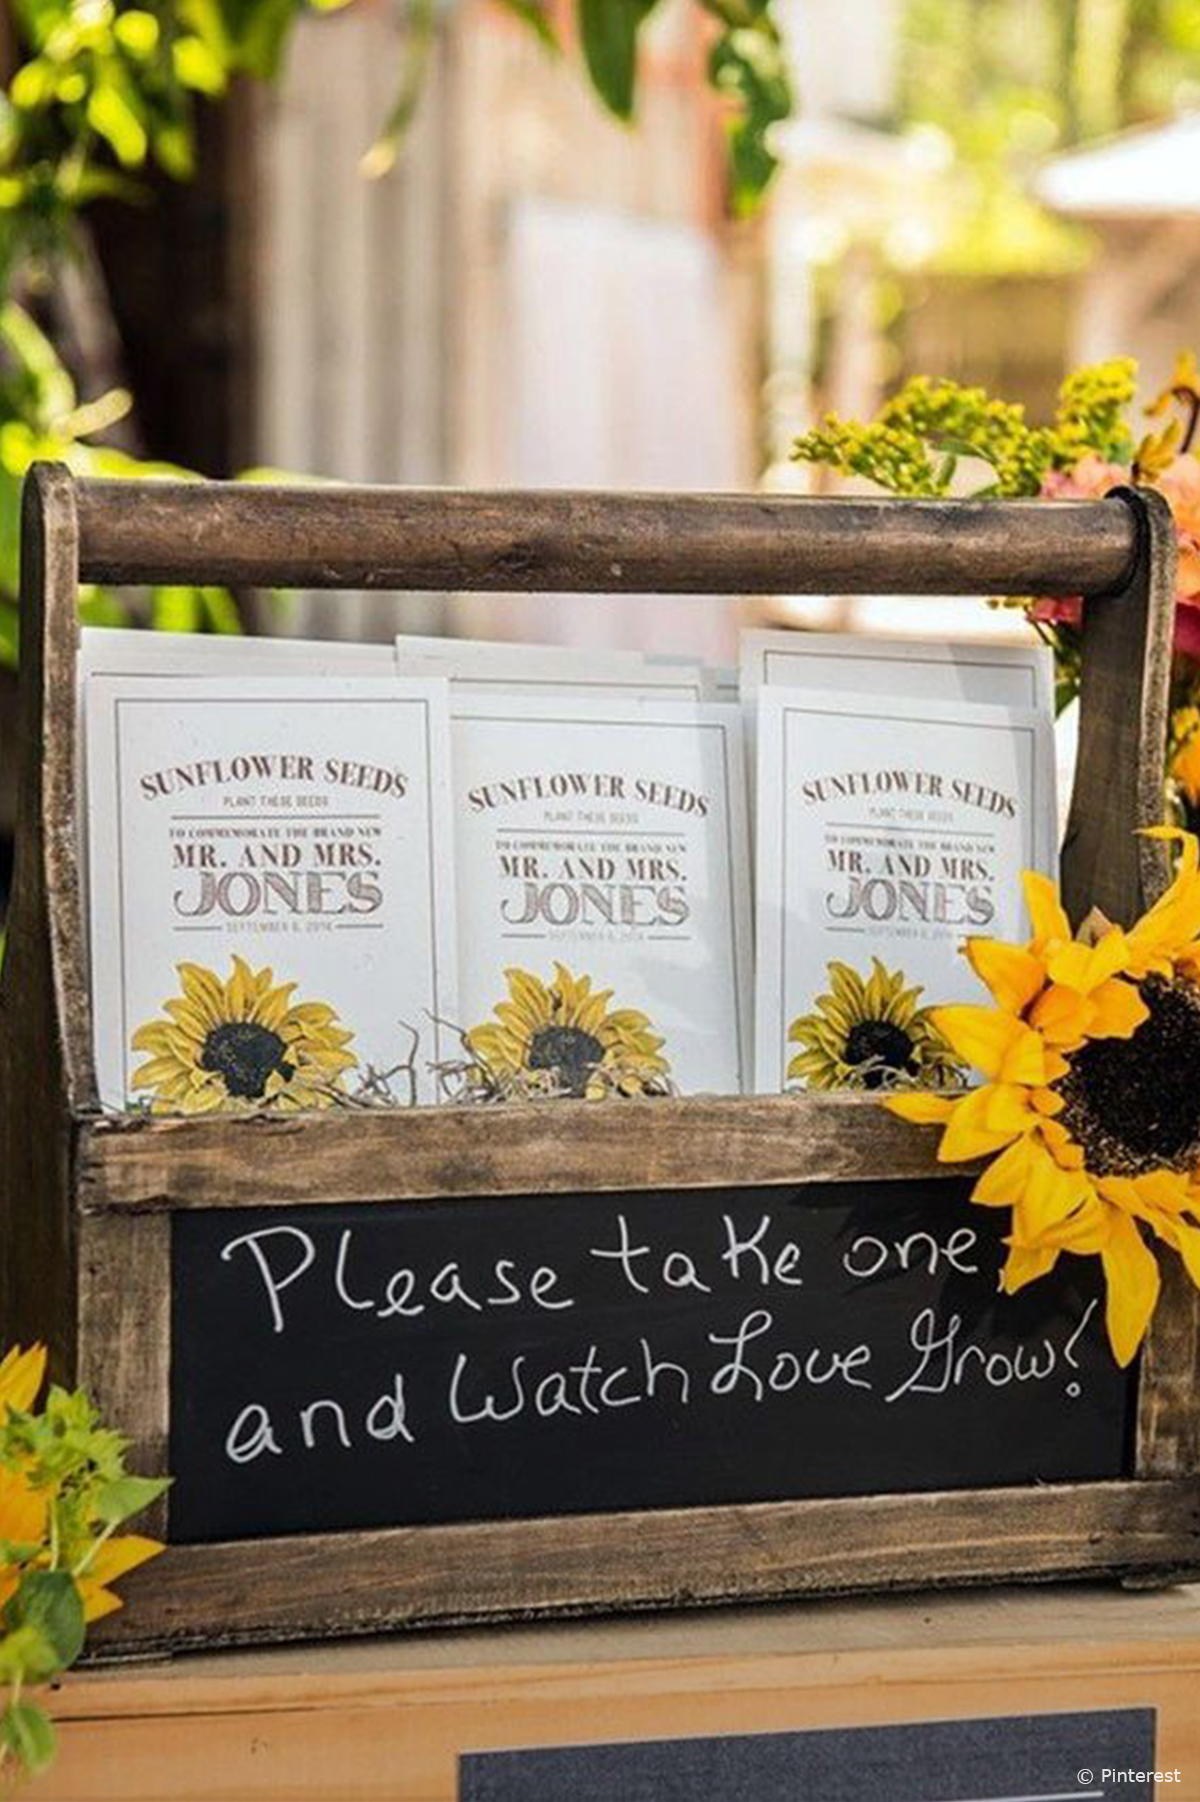 10 of our Favourite Wedding Favours 2016 - Sunflower seeds